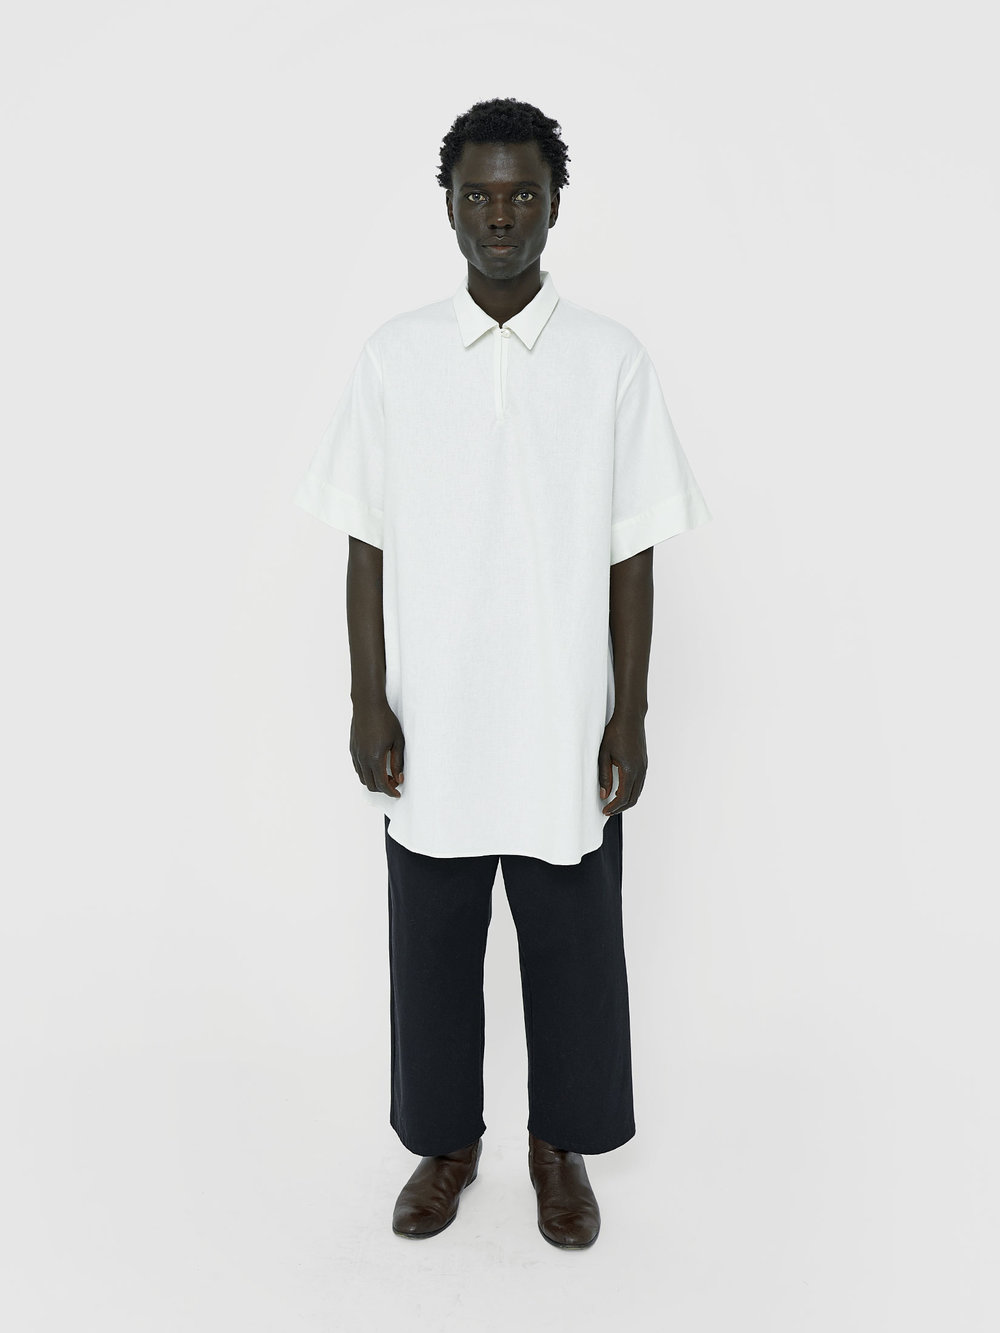 George Wears One DNA Versatile Tunic In White